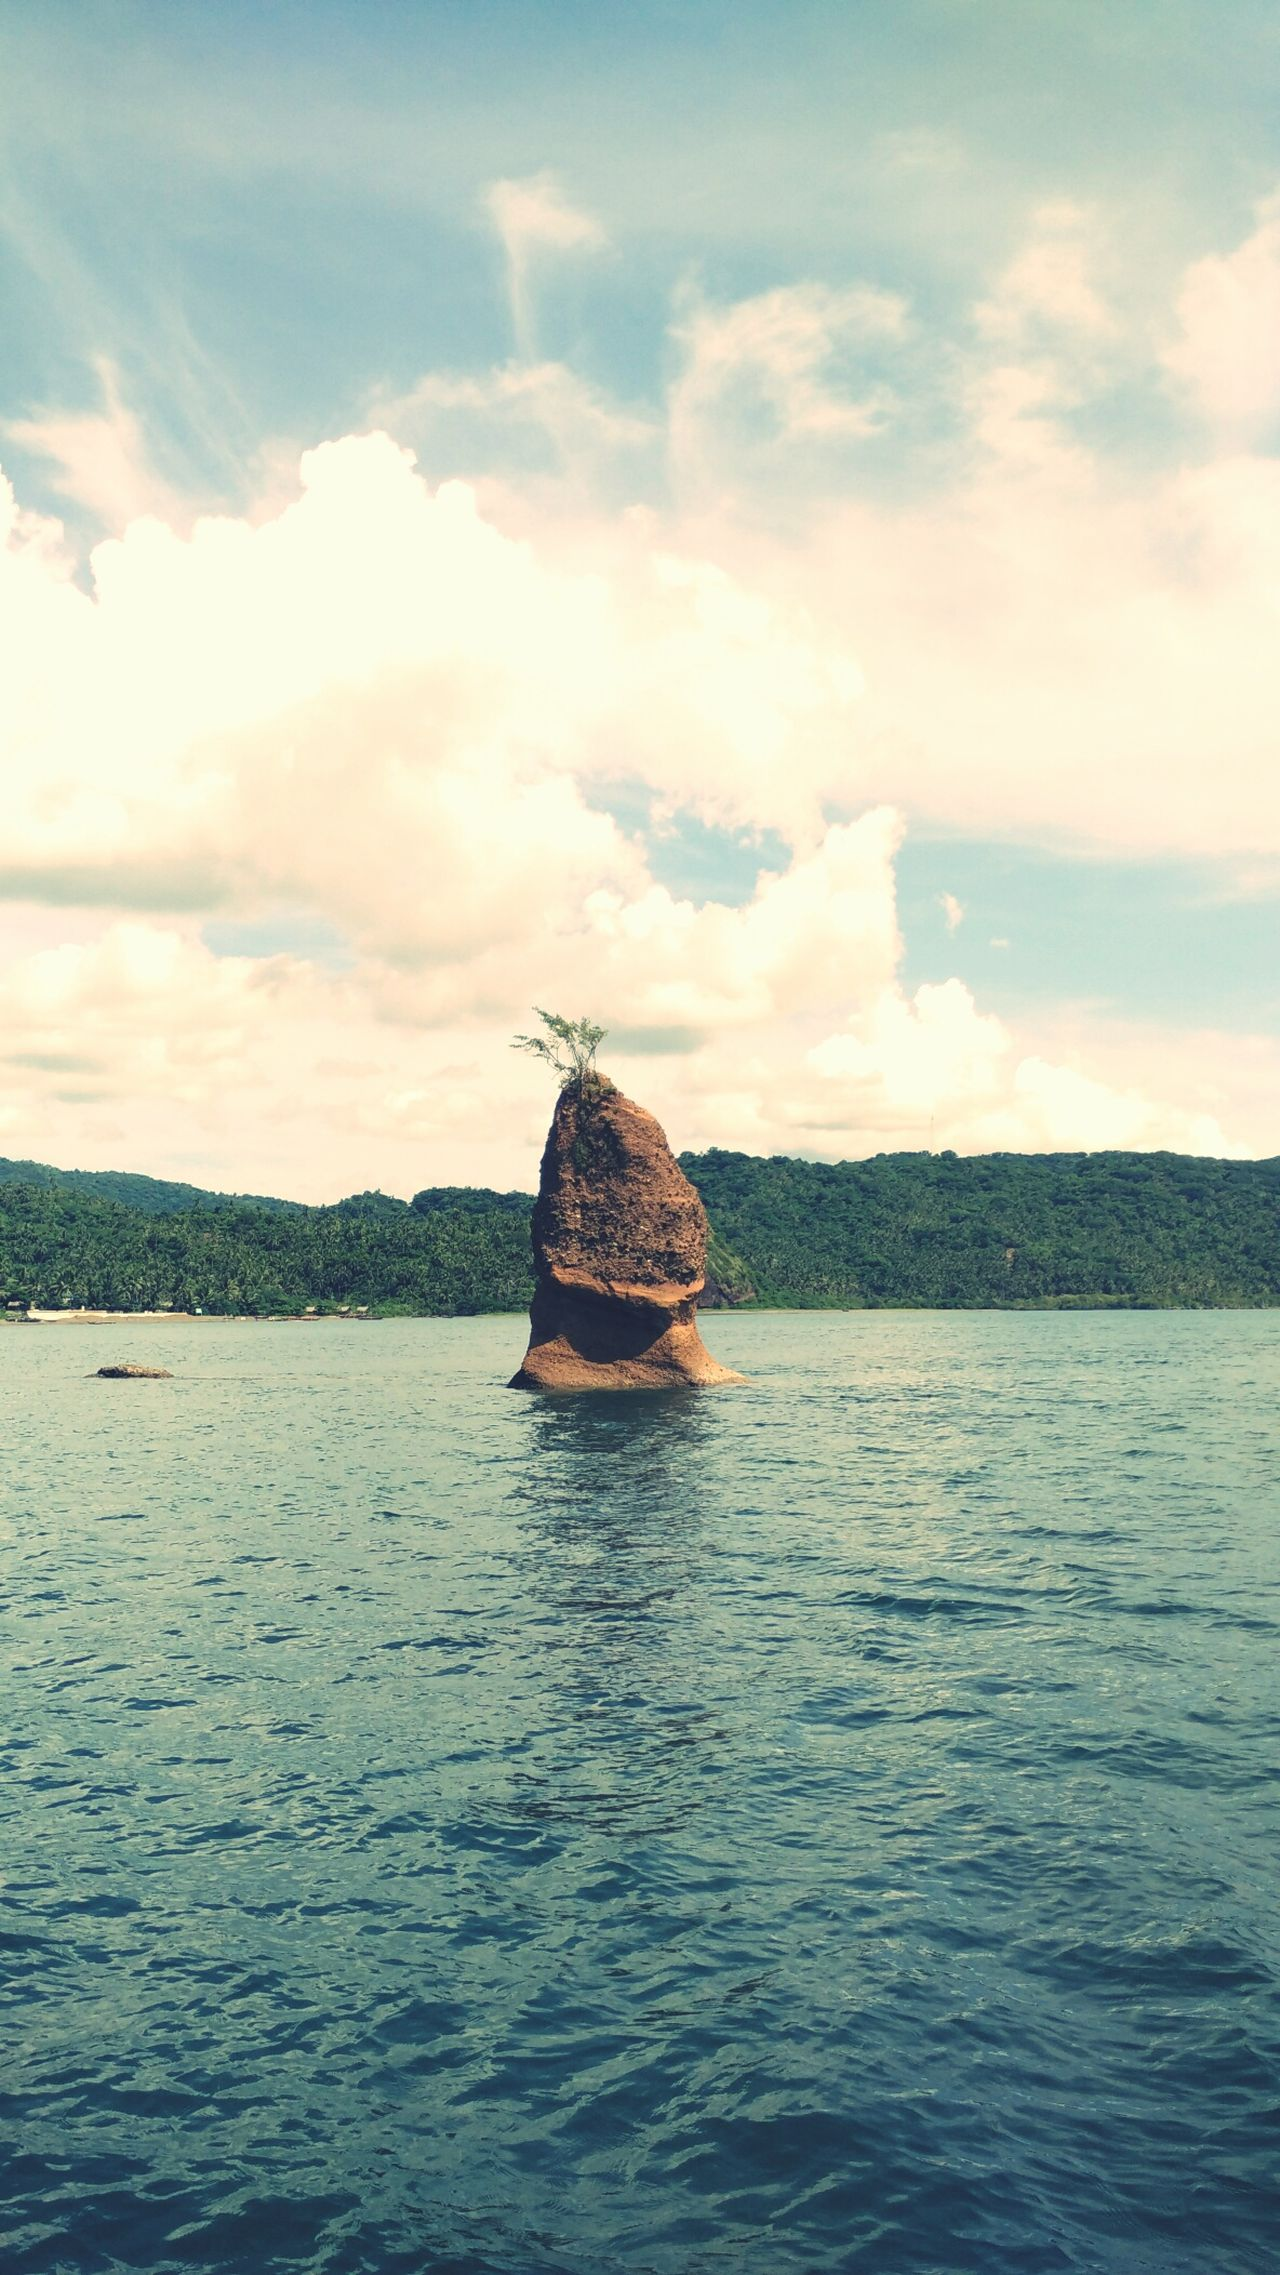 Phallic shaped islet Taking Photos Check This Out Hanging Out Hello World Enjoying Life Fertility Islet Buto Ni Kurakog Bagamanoc Gophilippines Gocatanduanes Eye4photography  Rugged Landscape Eyem Philippines EyeEm Best Shots EyeEm Best Shots - Nature The Great Outdoors - 2016 EyeEm Awards The Places I've Been Today Telling Stories Differently Landscape Lifewelltravelled Travel Photography Travel Destinations